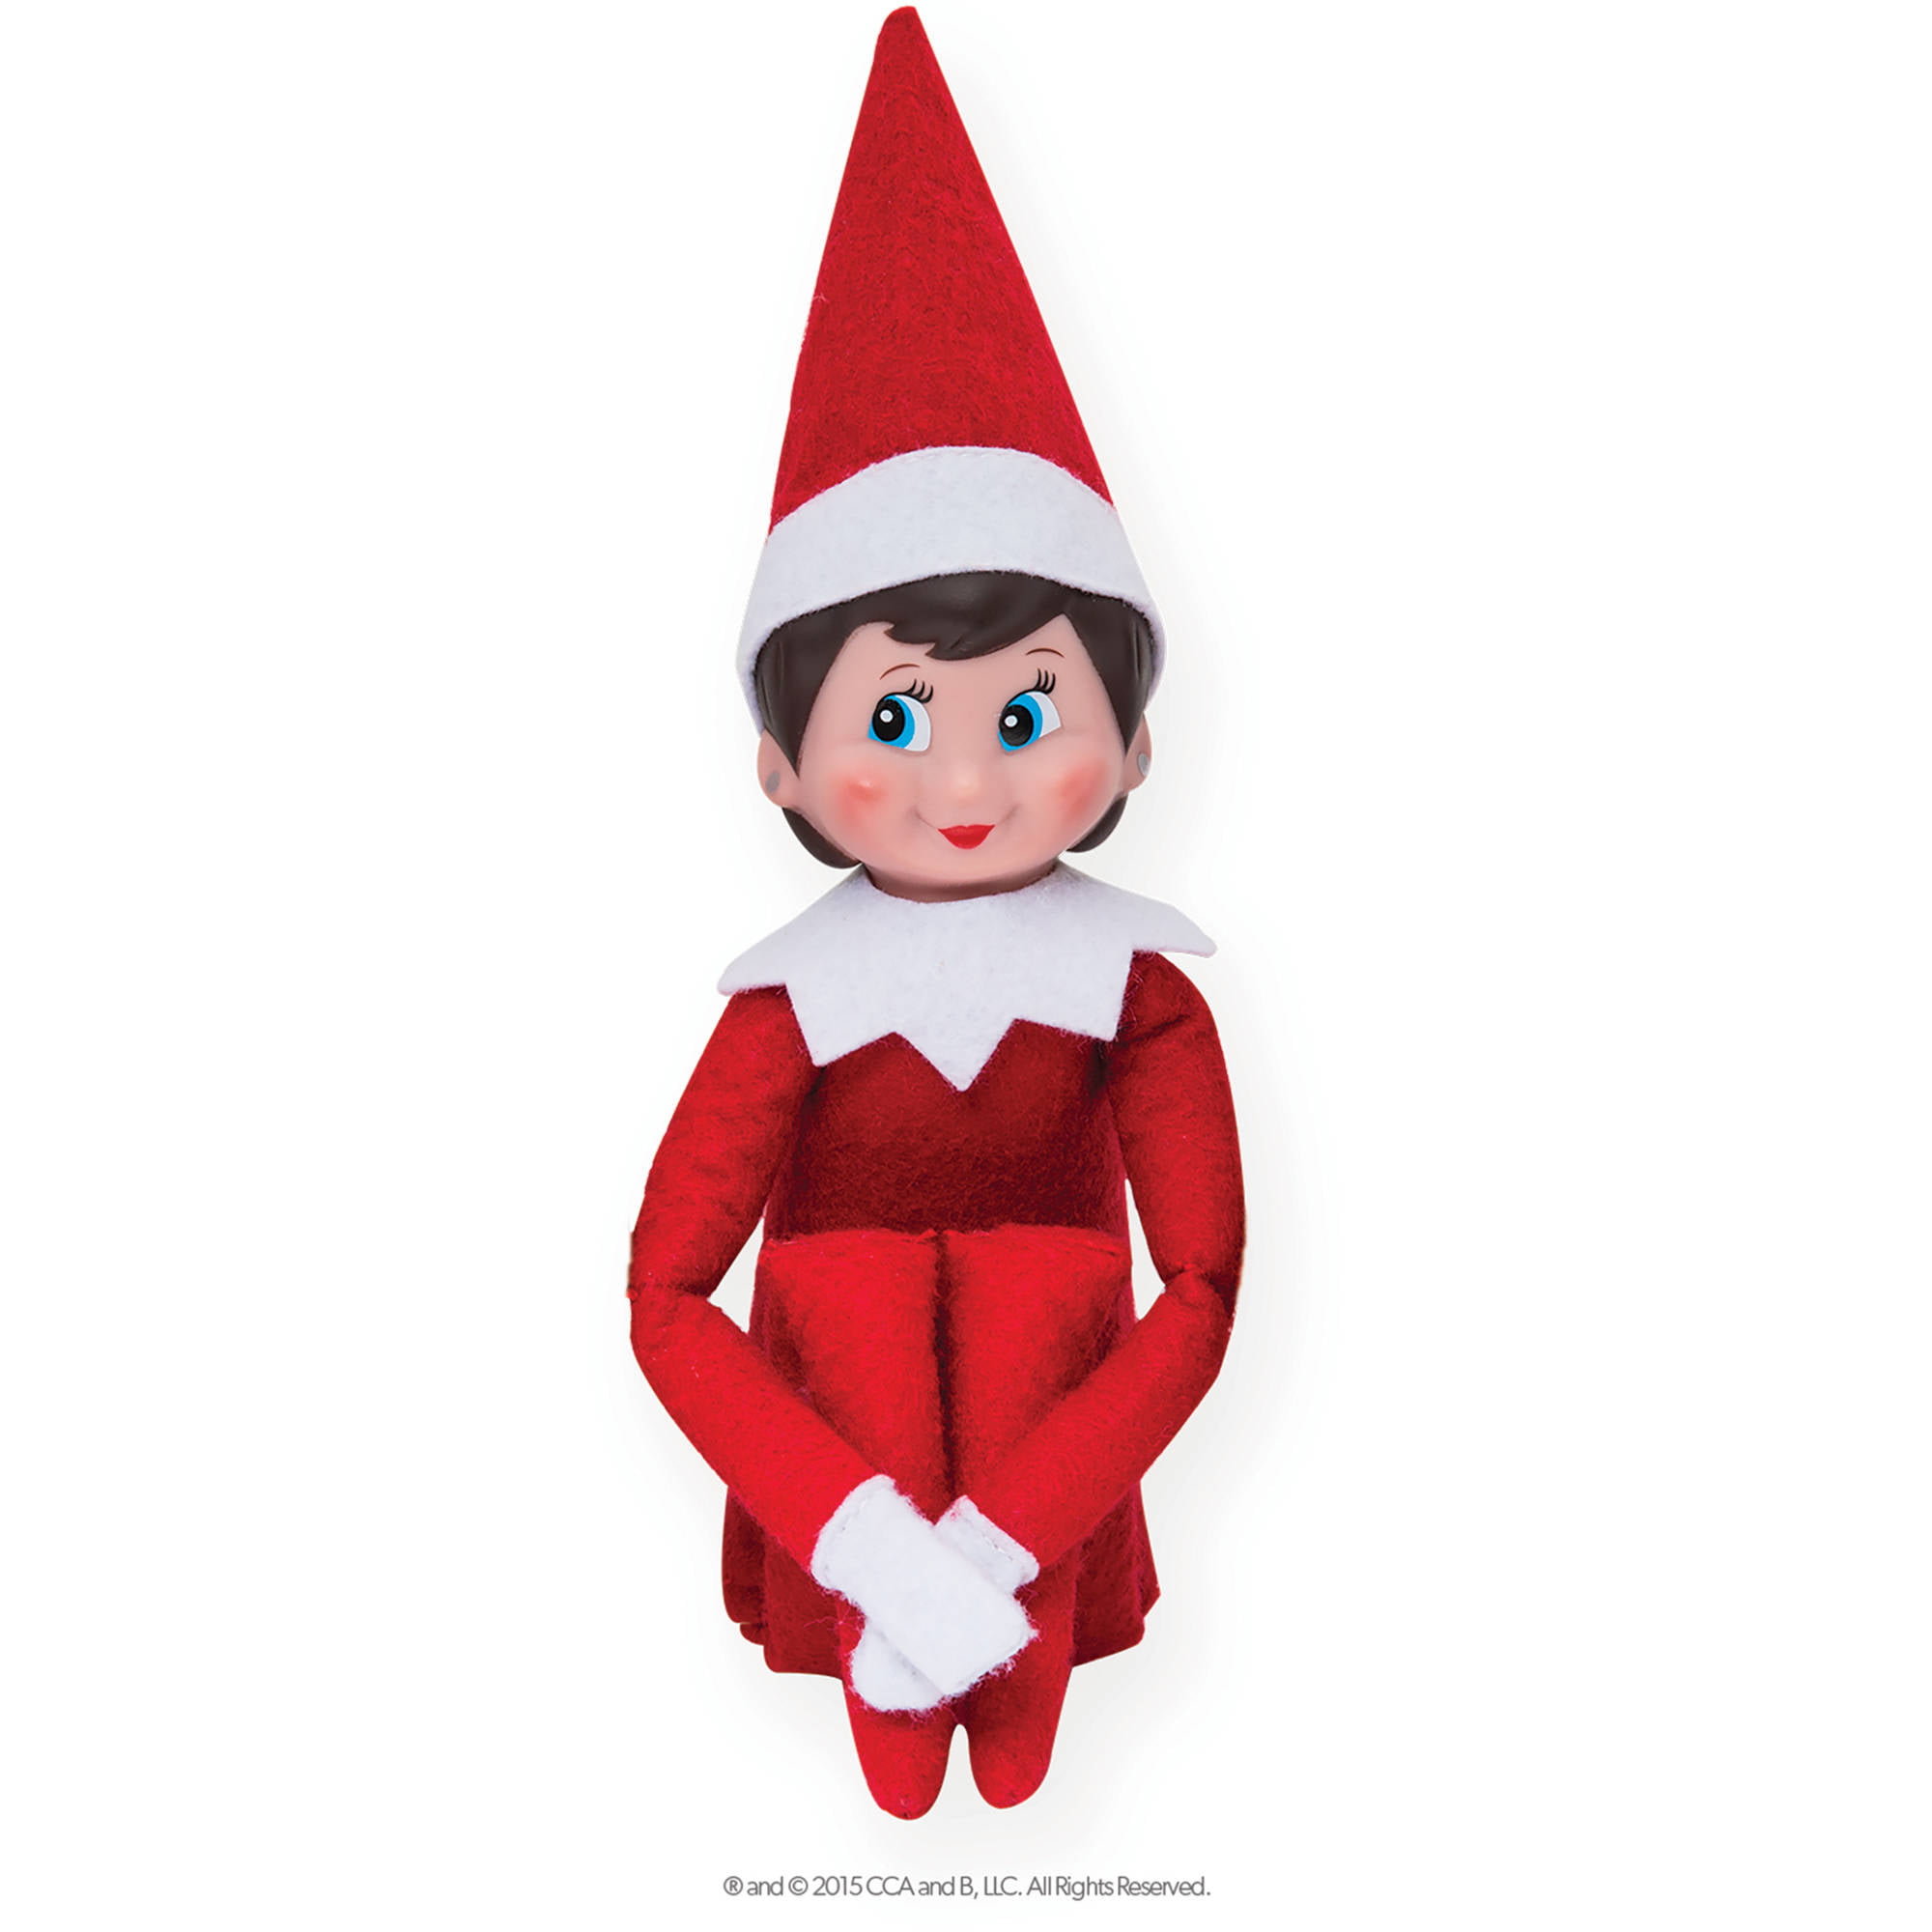 What is Elf on the Shelf and why is the Christmas]